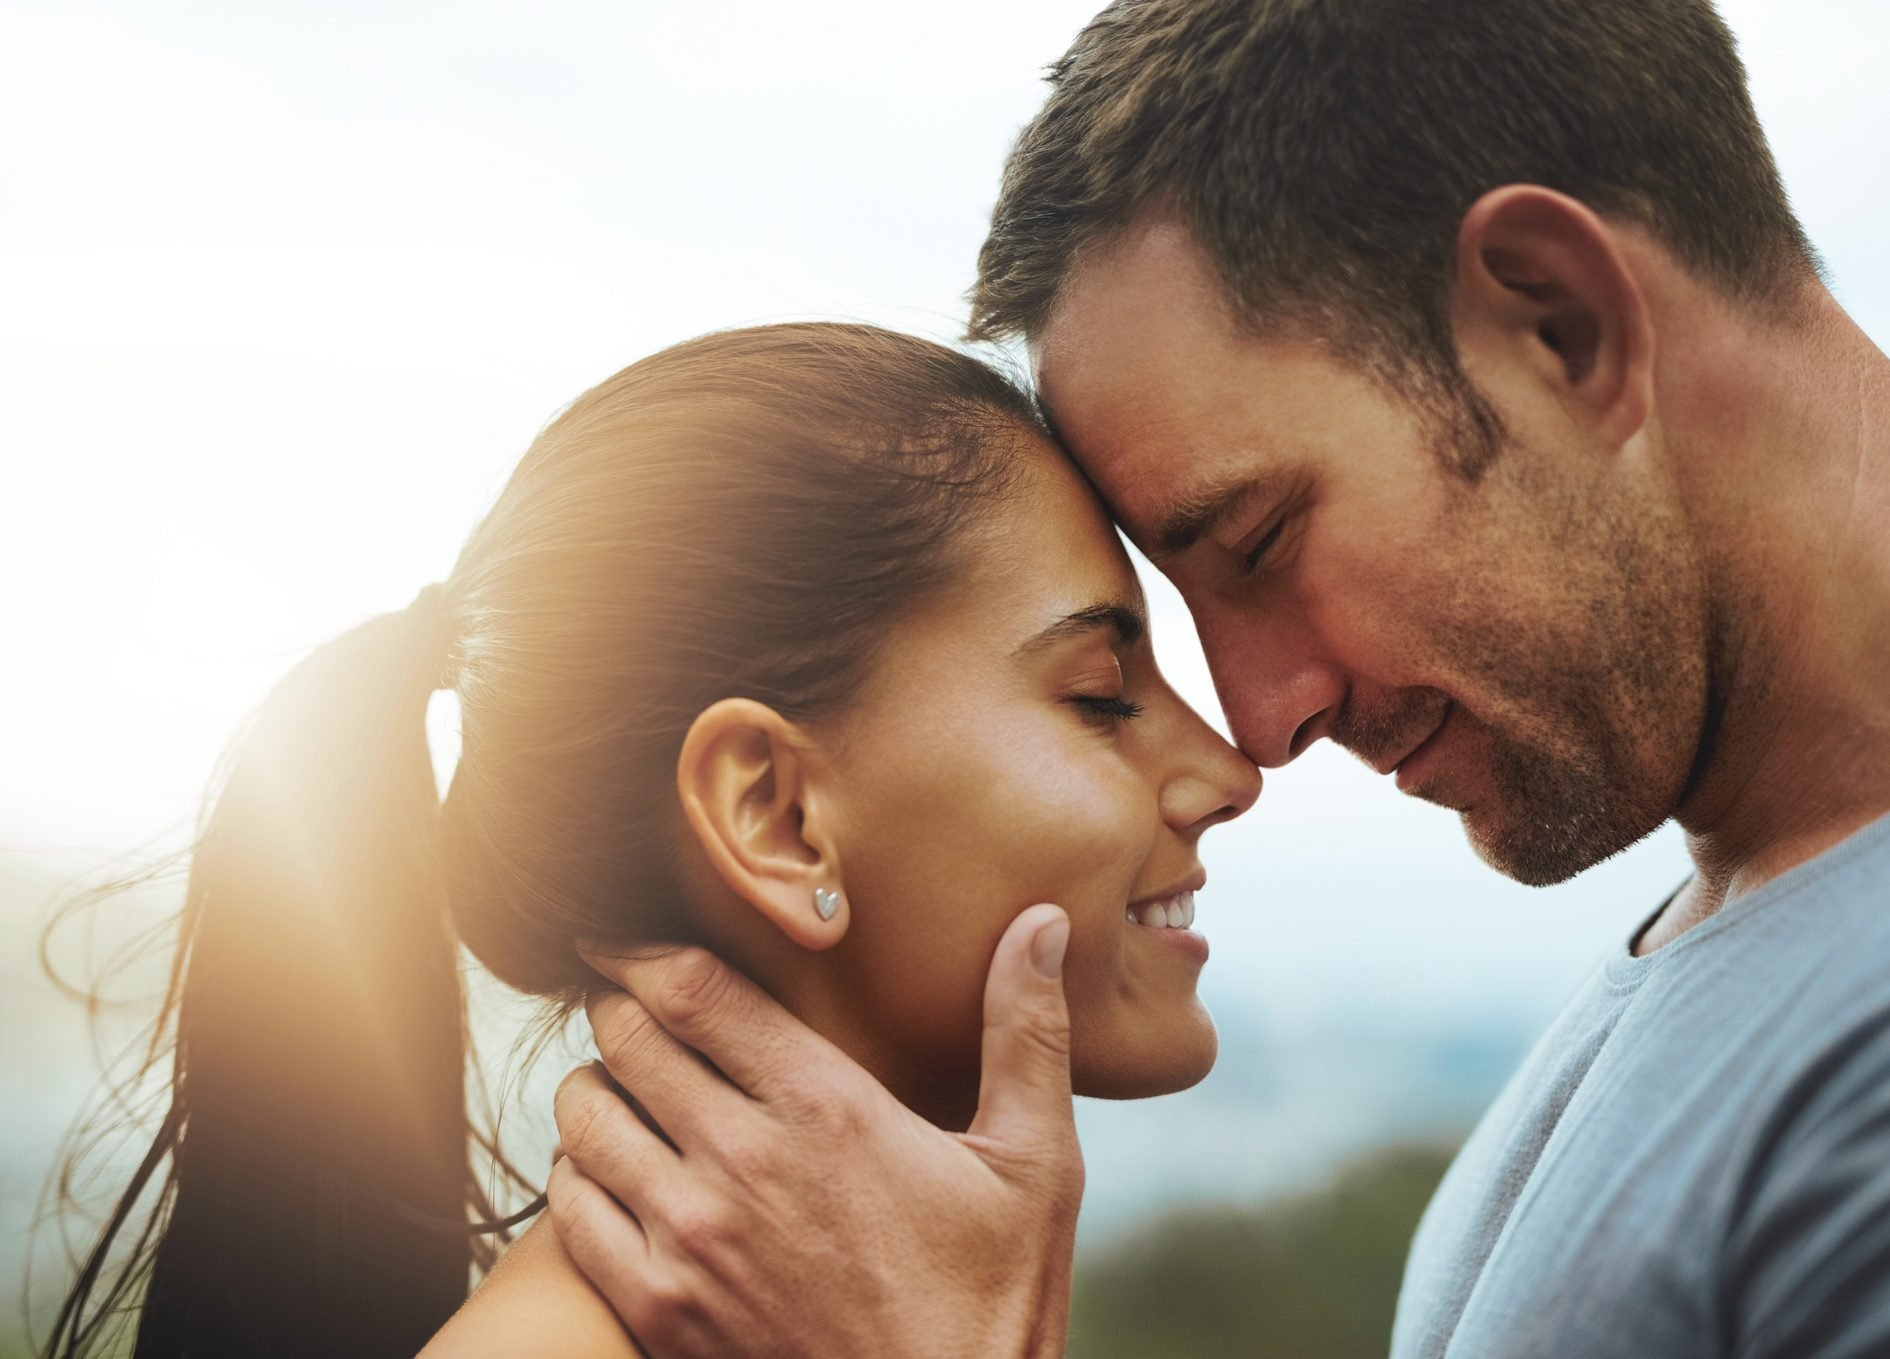 10 Ways To Make Your Partner Feel Loved